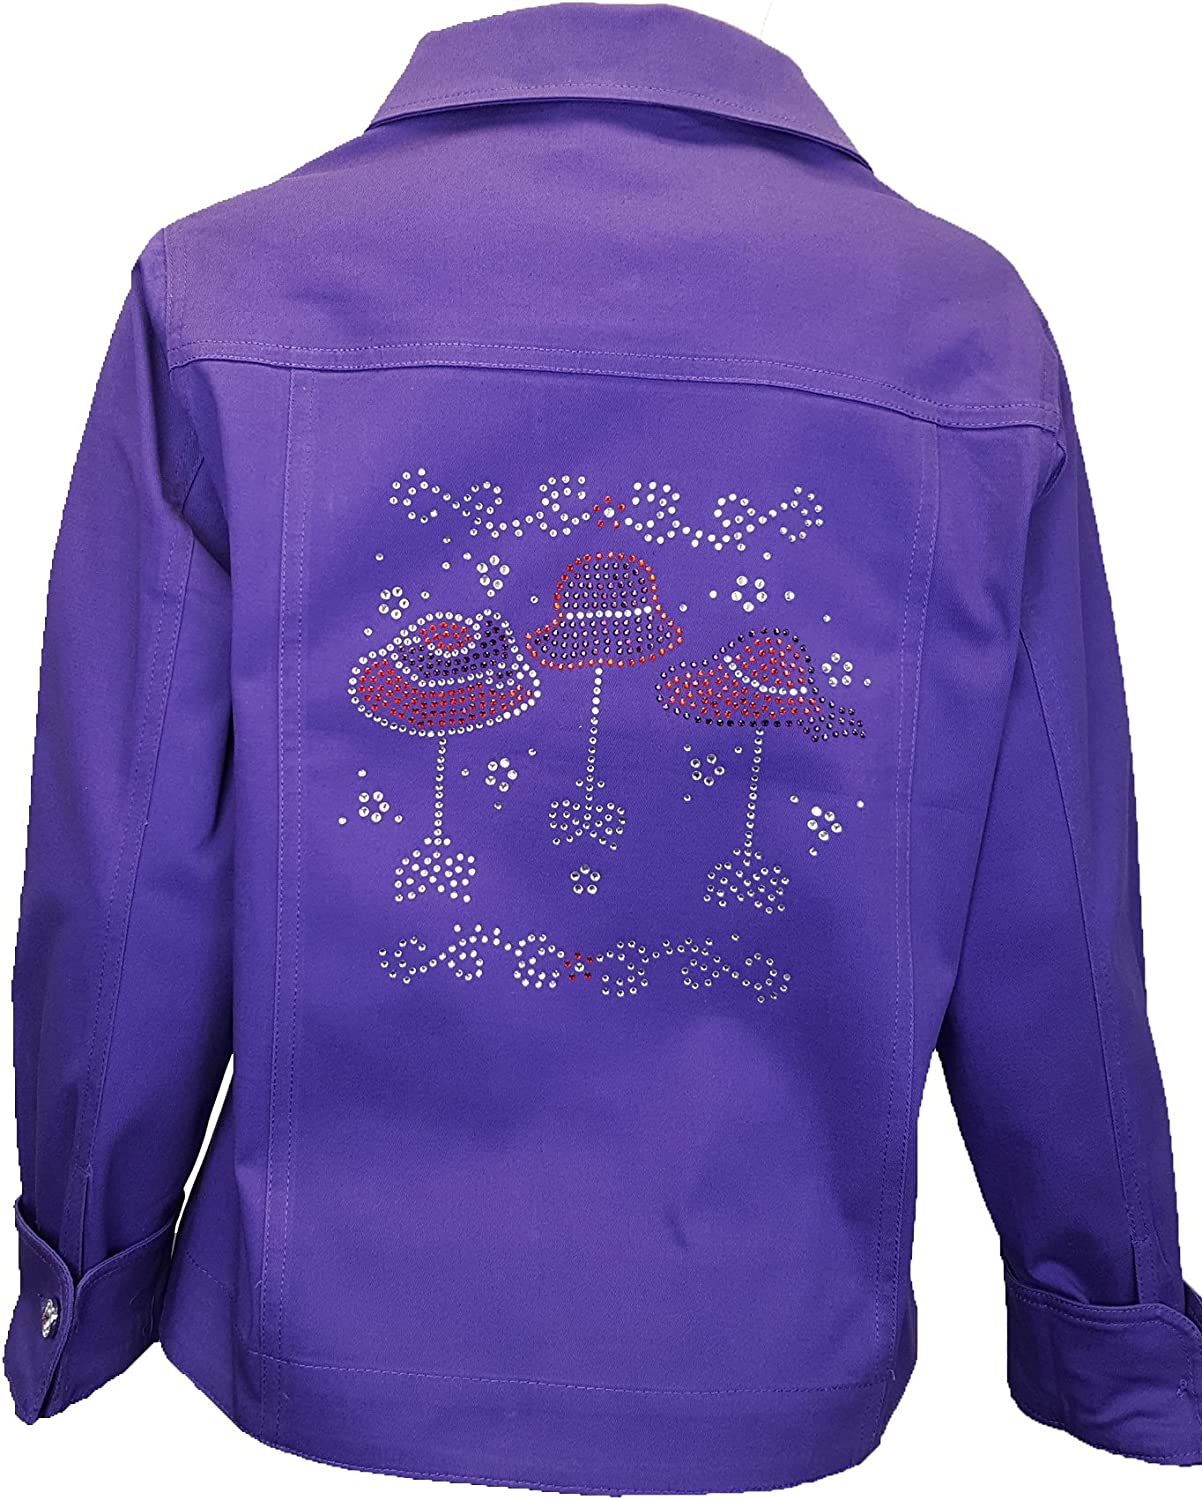 ID ISAAC'S DESIGNS Purple Red Hat Society Womens Bling Rhinestone Jacket with Stretch